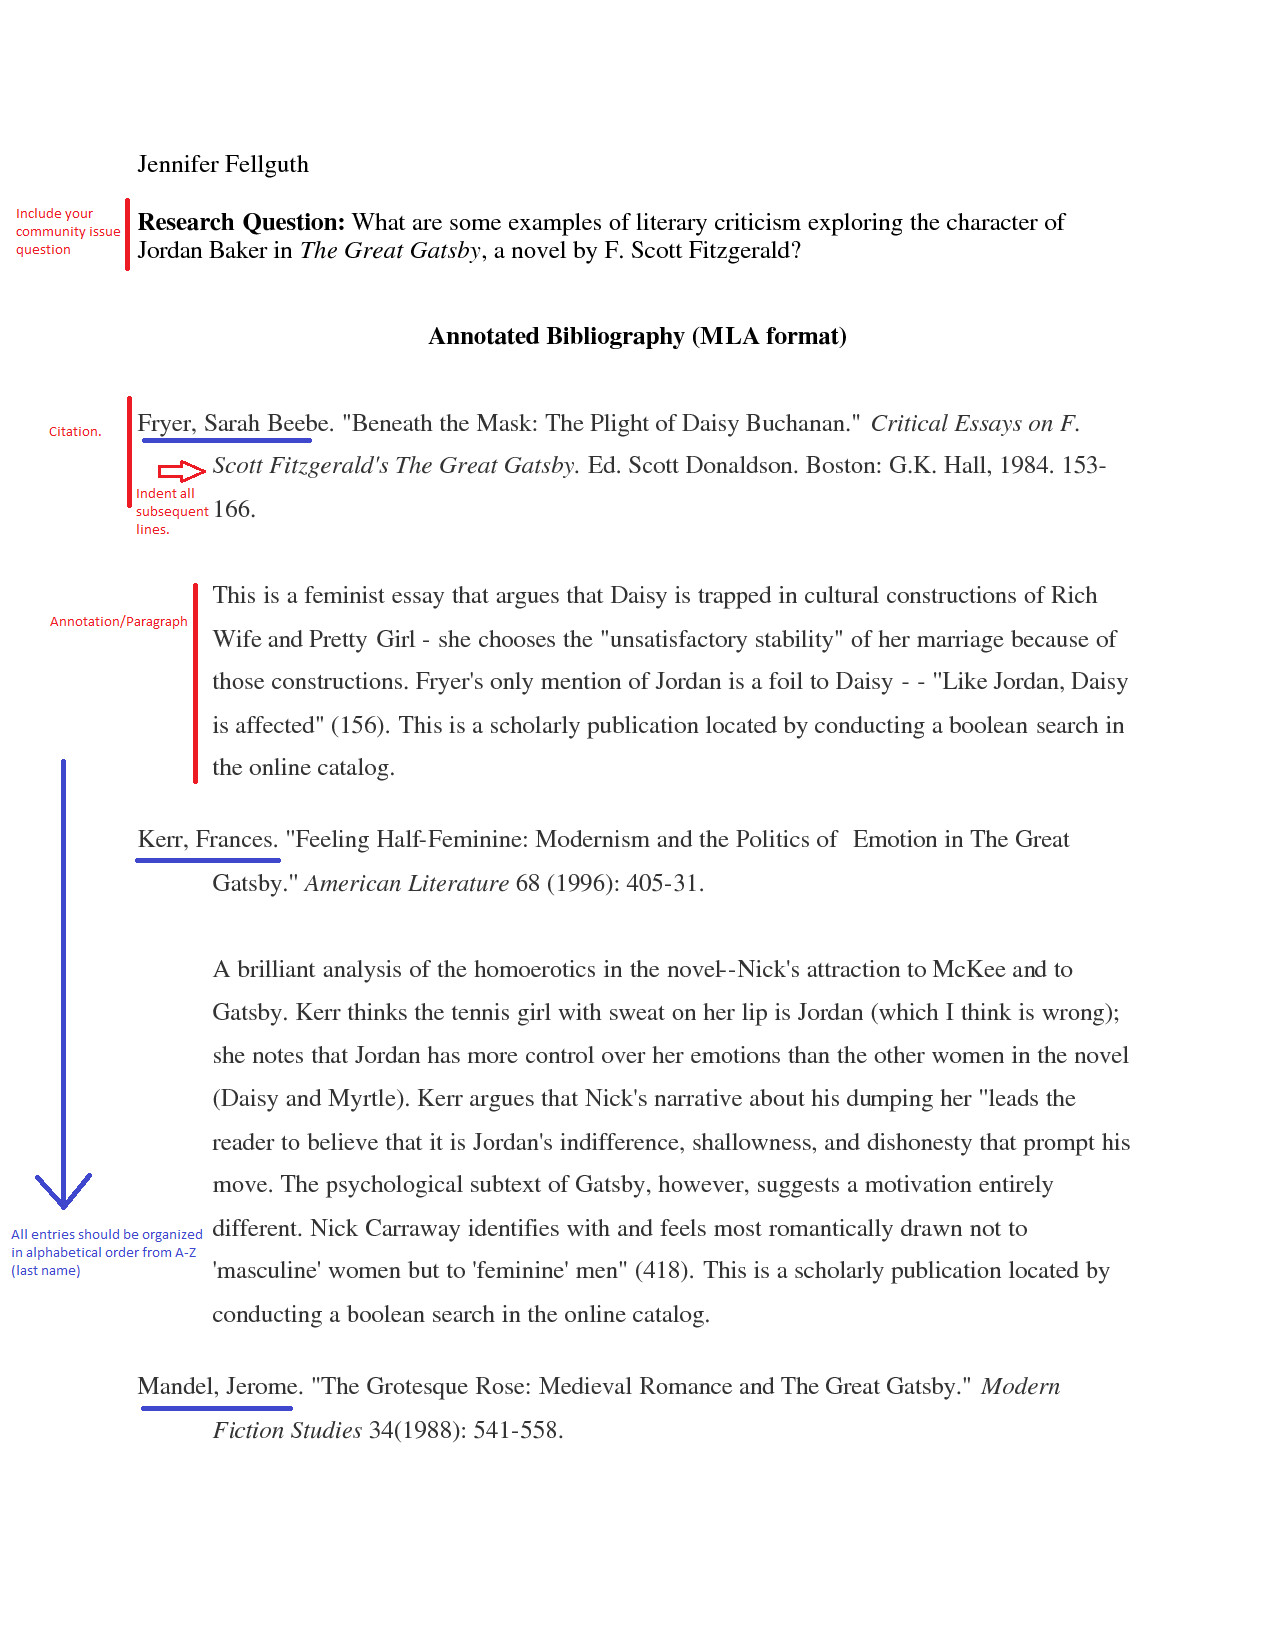 020 Mla Citation For Essay How To Cite Images In Format Did You Know Example Papernotatedbibsampleanno Parenthetical Citing Archaicawful An A Book 8th Edition Work Within Apa Full